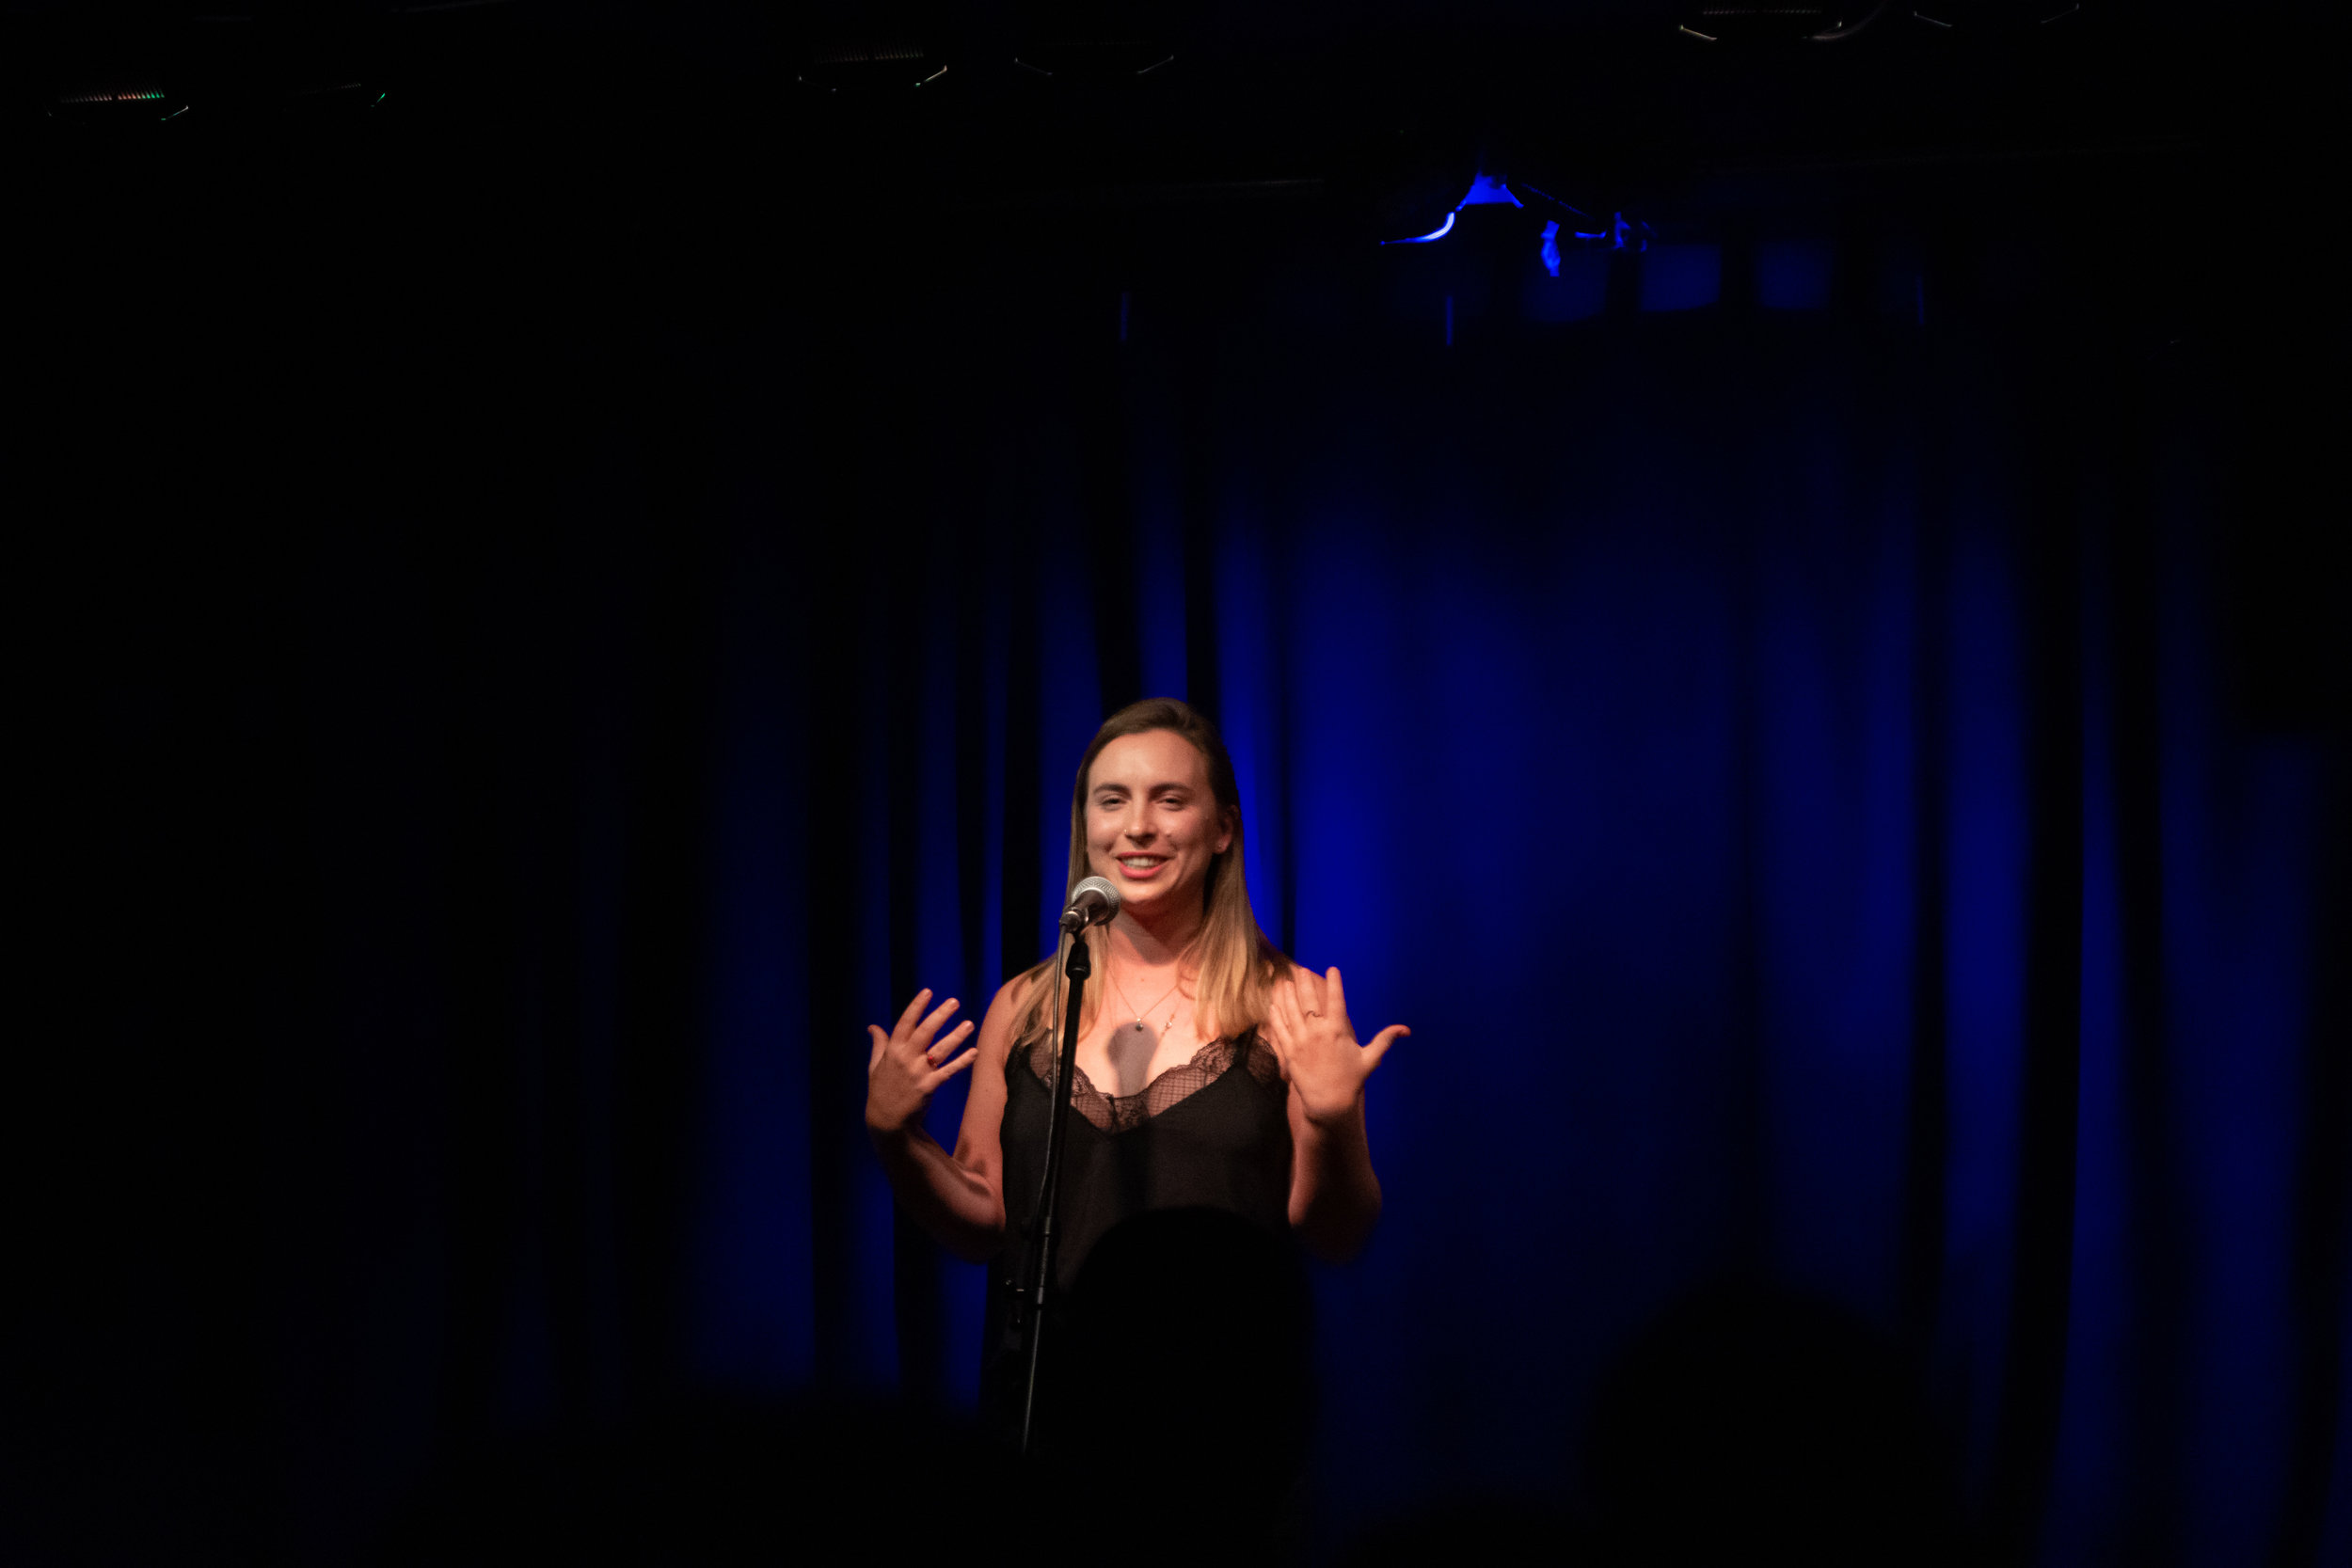 Misha Gajewski shares her story at the Burdock Music Hall in Toronto, ON in January 2019. Photo by Stacey McDonald.